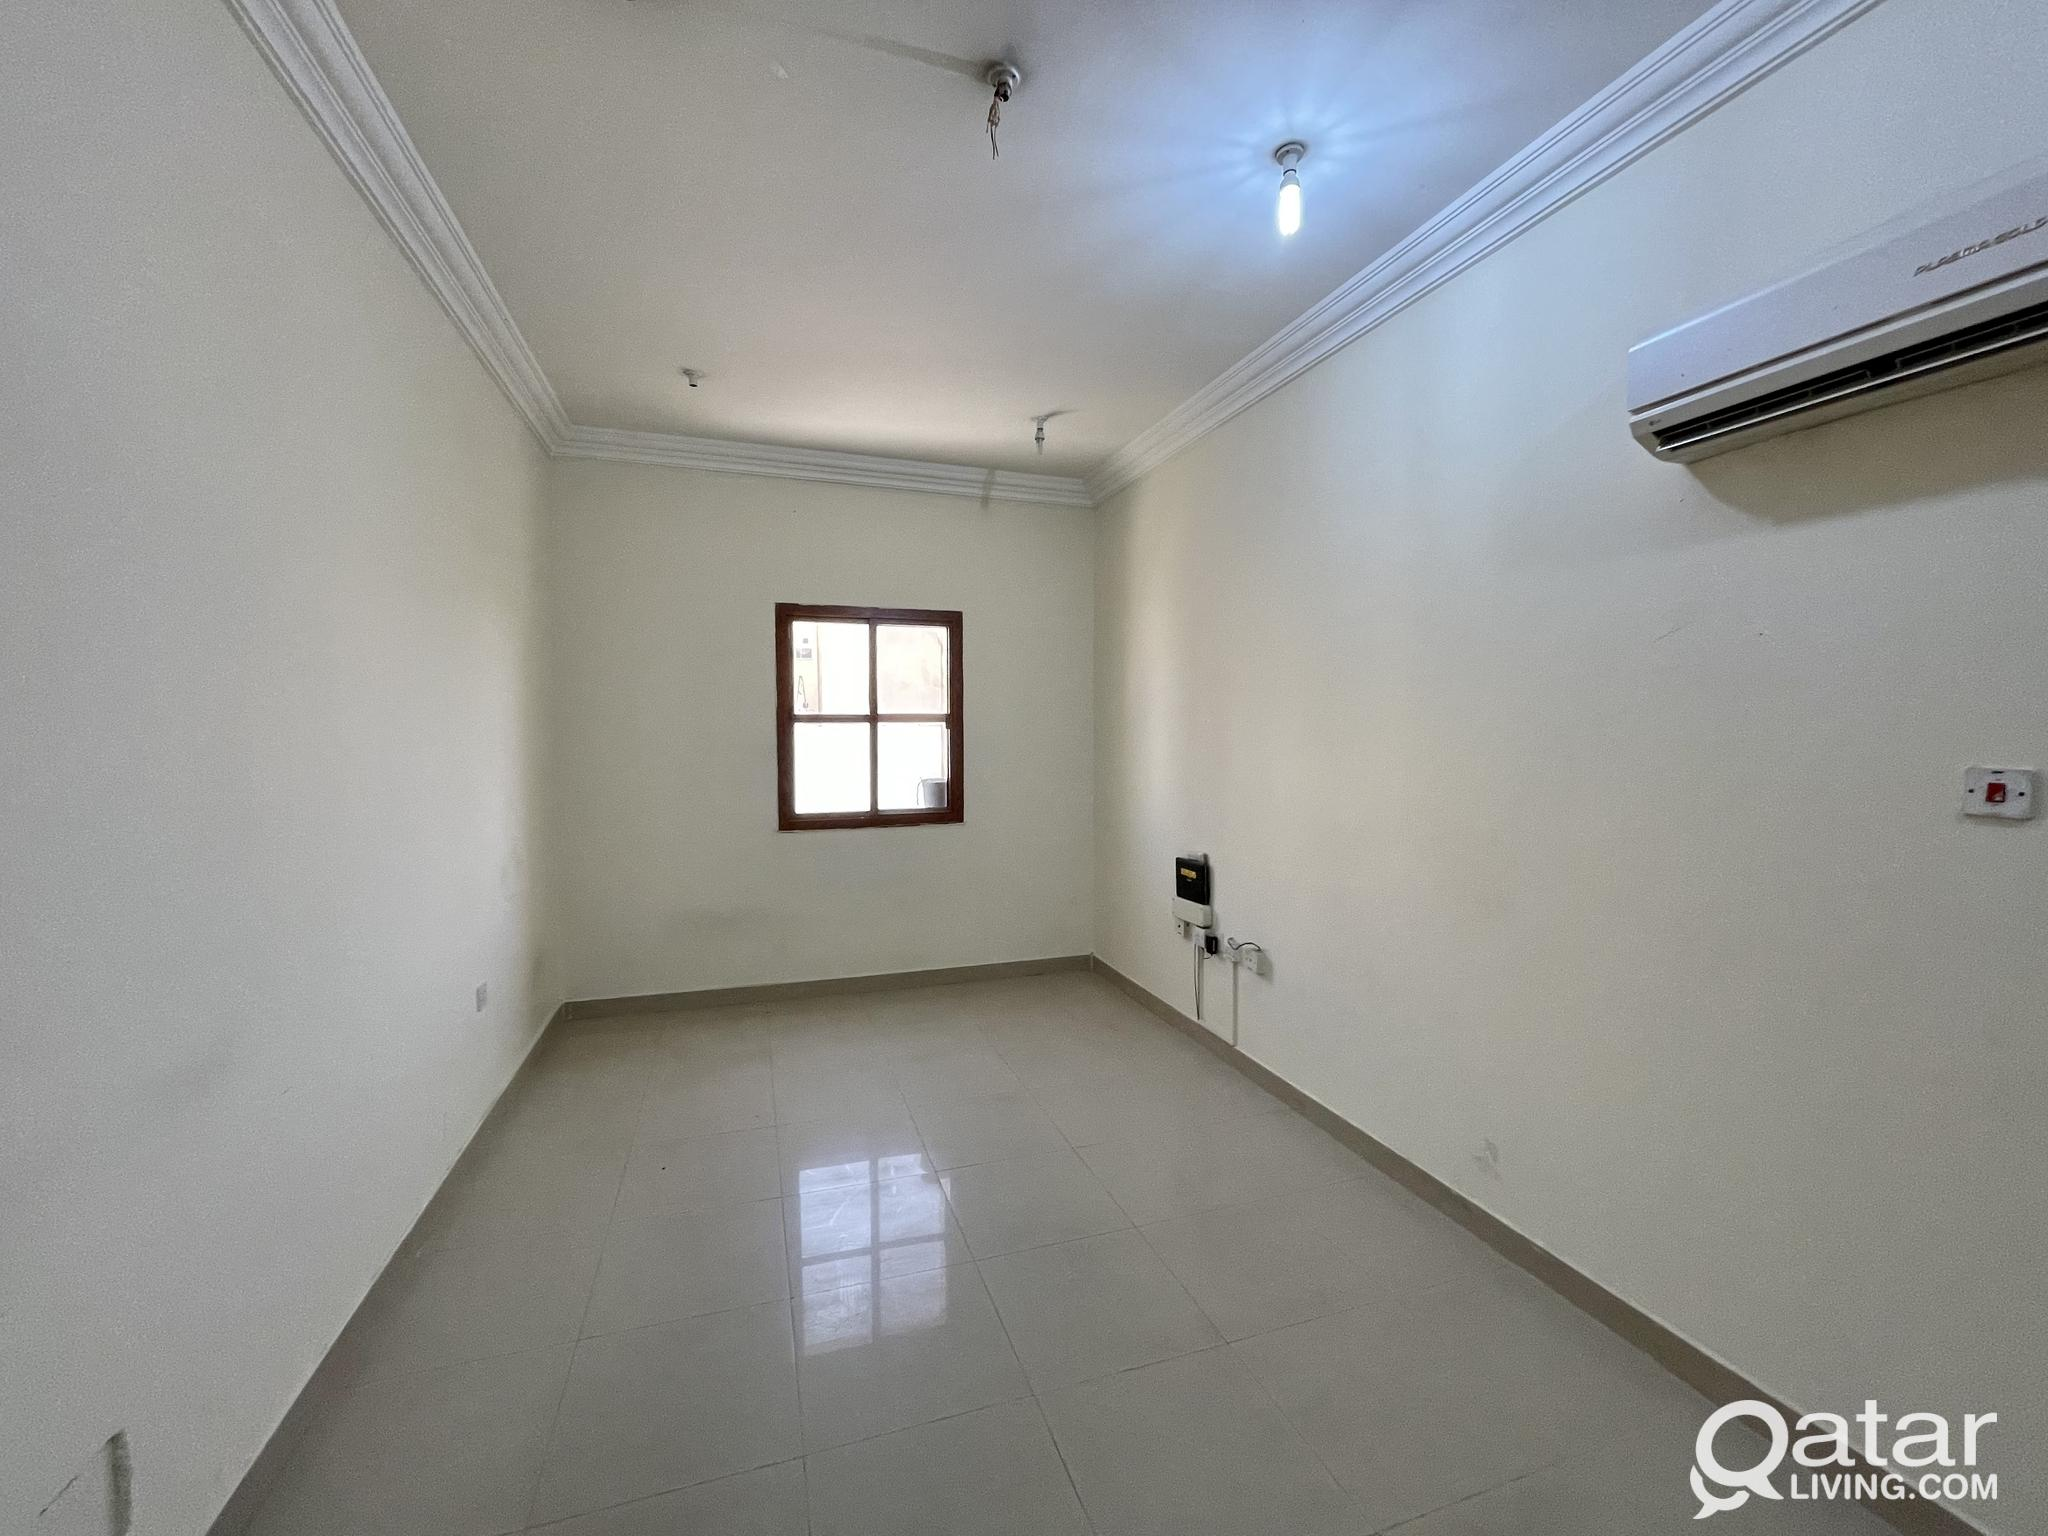 !! UNFURNISHED SPACIOUS 2 BED ROOM FLATS AVAILABLE